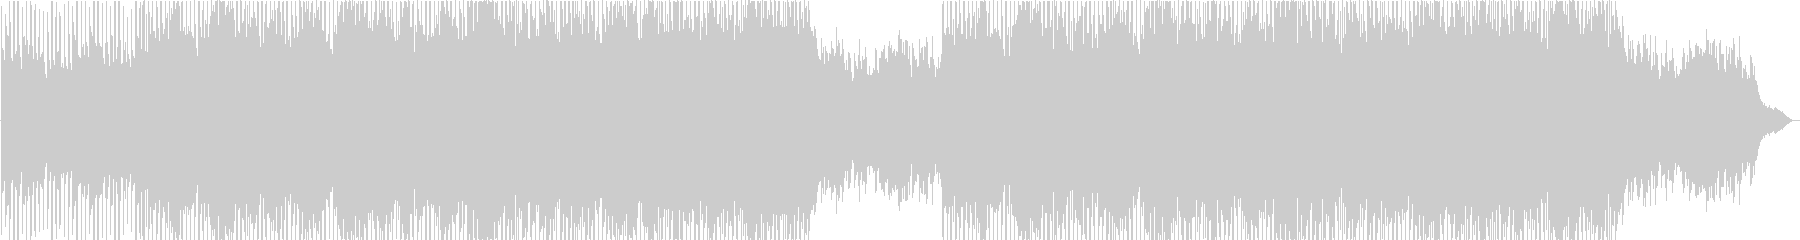 A transparent, refreshing and bright positive piano's unreproduced waveform